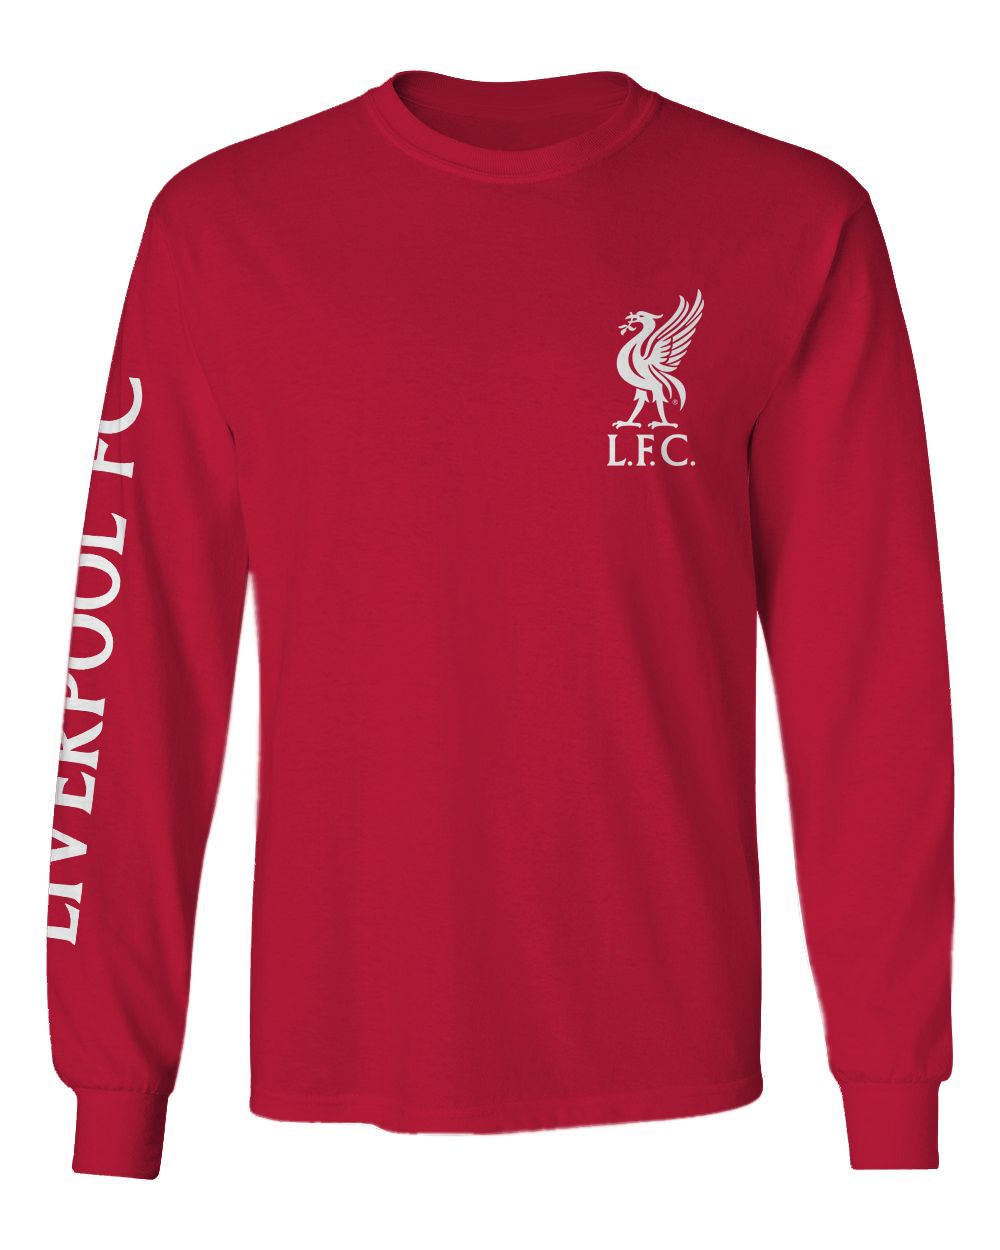 06d45959f63 Brett, Size M- Official Liverpool FC Red Slogan Long-Sleeve T-Shirt ...